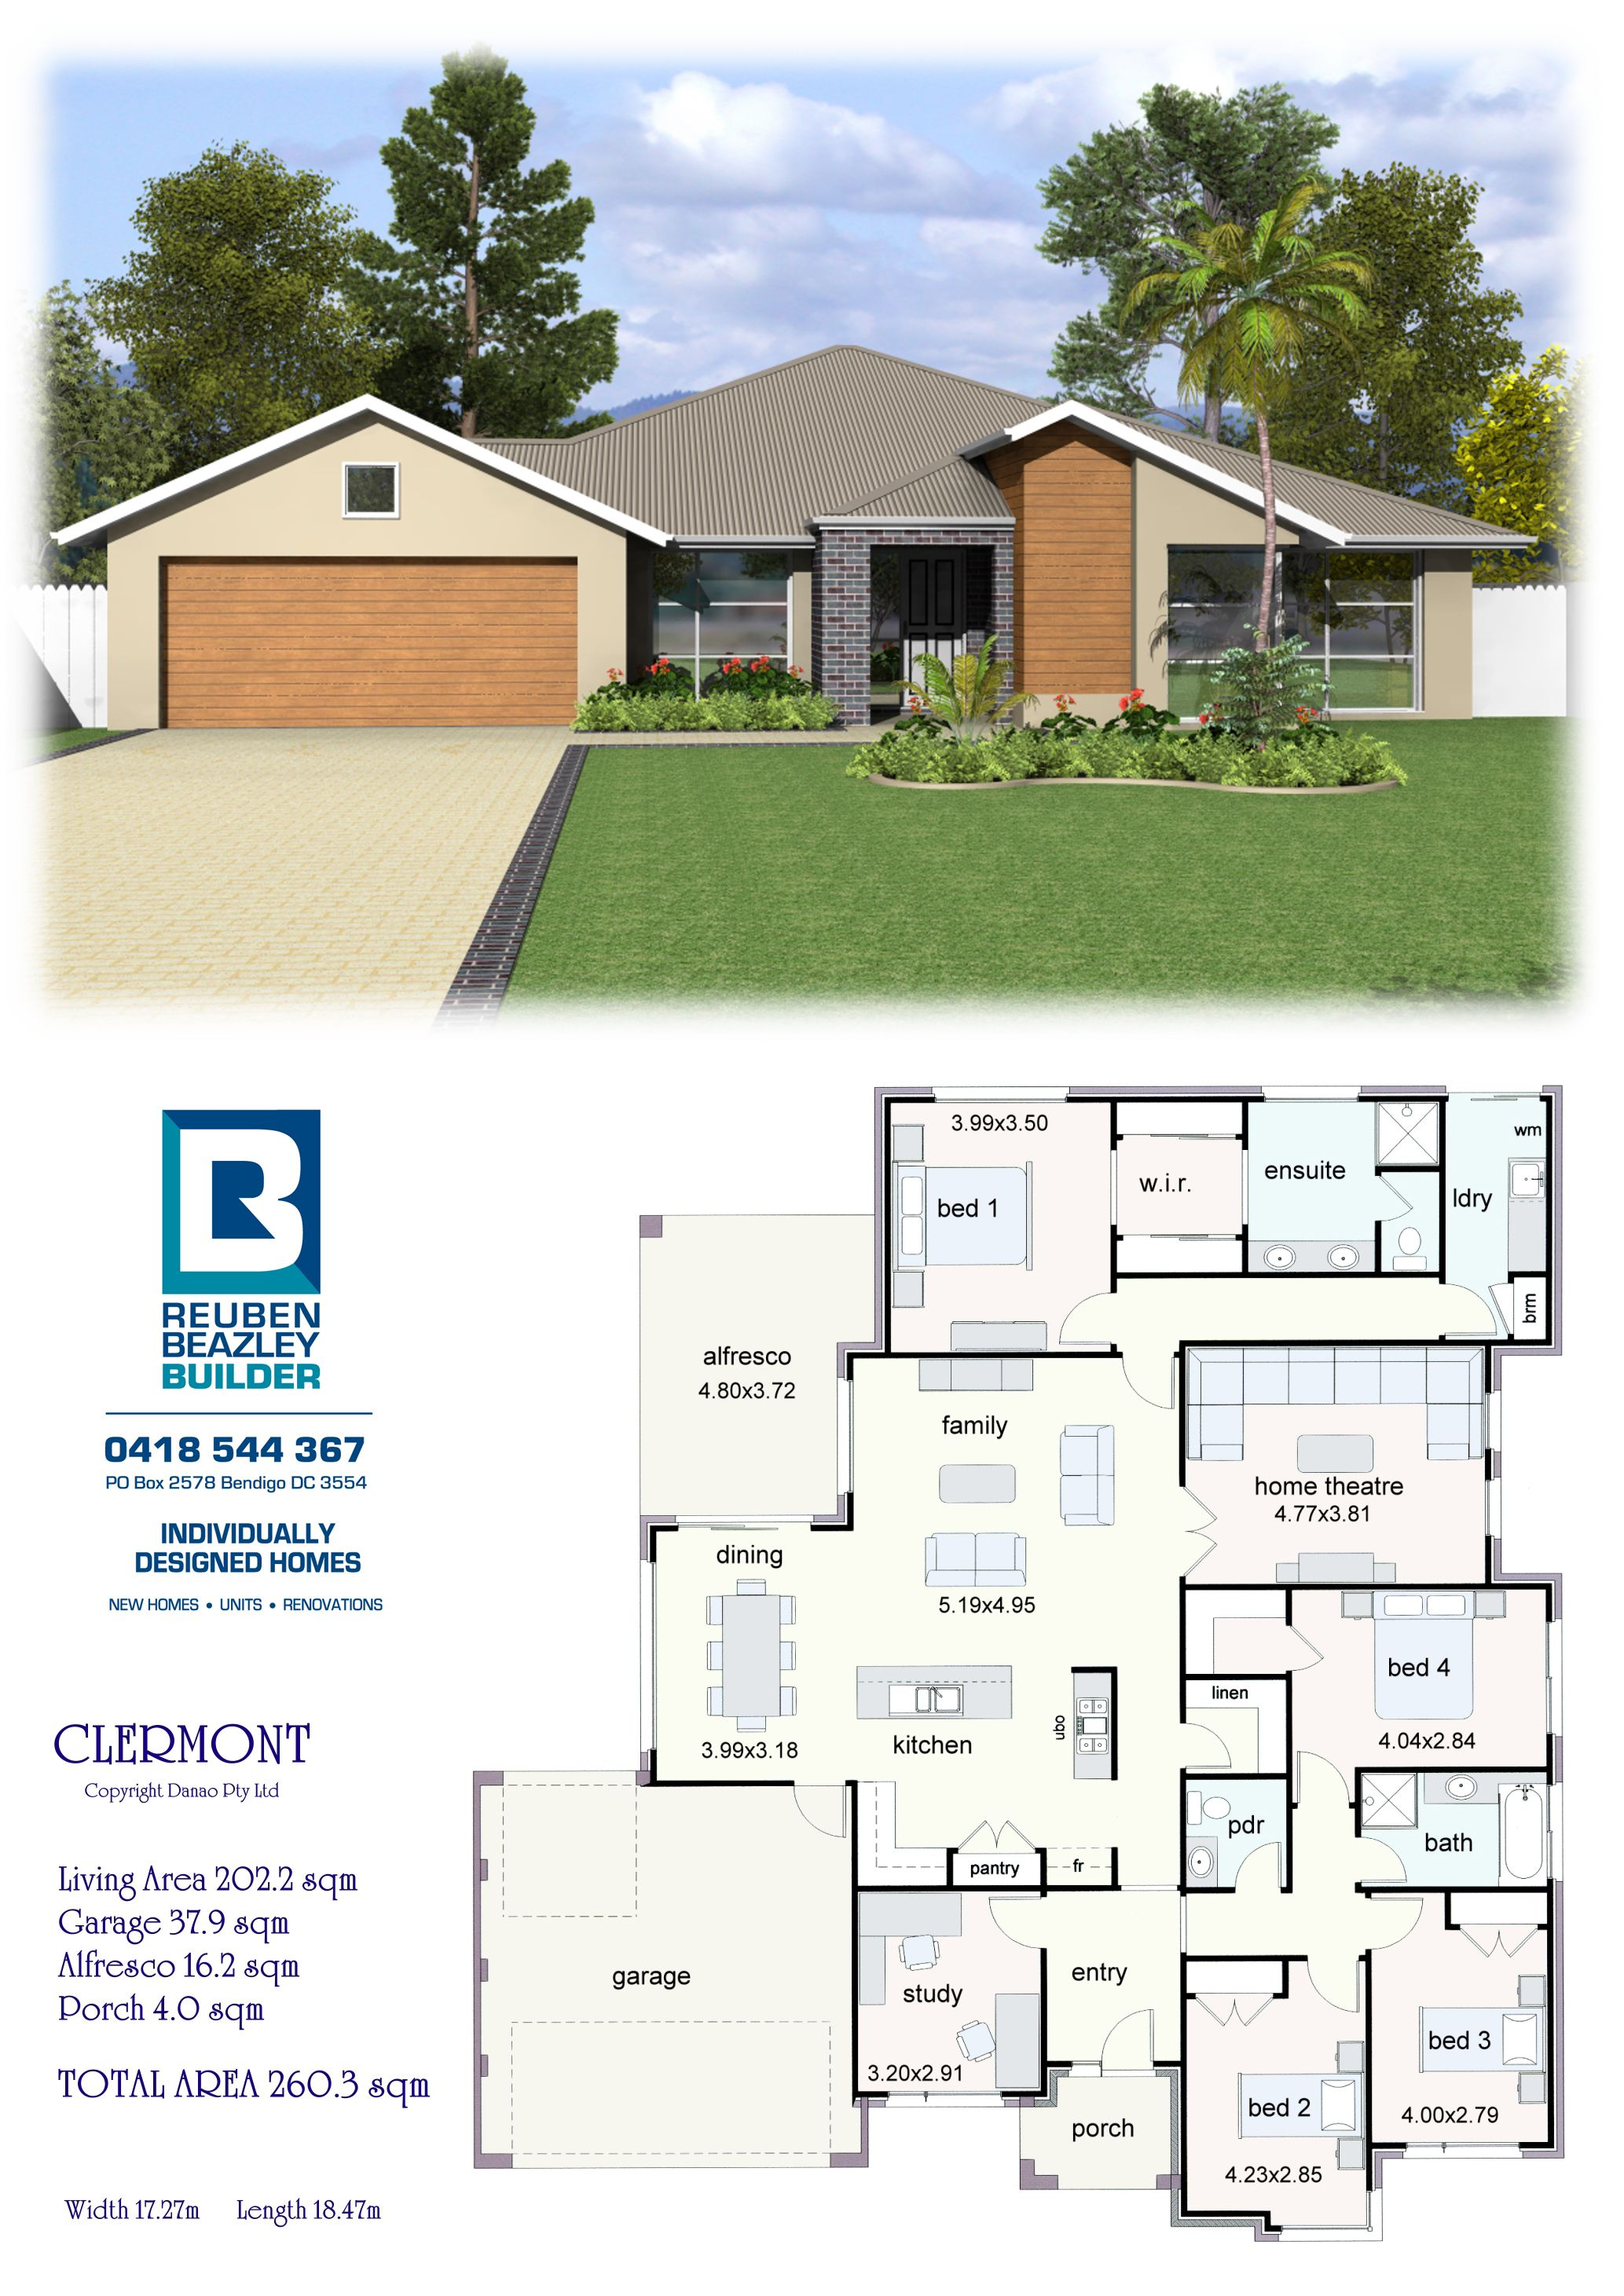 The Clermont House Construction Plan My House Plans Dream House Plans